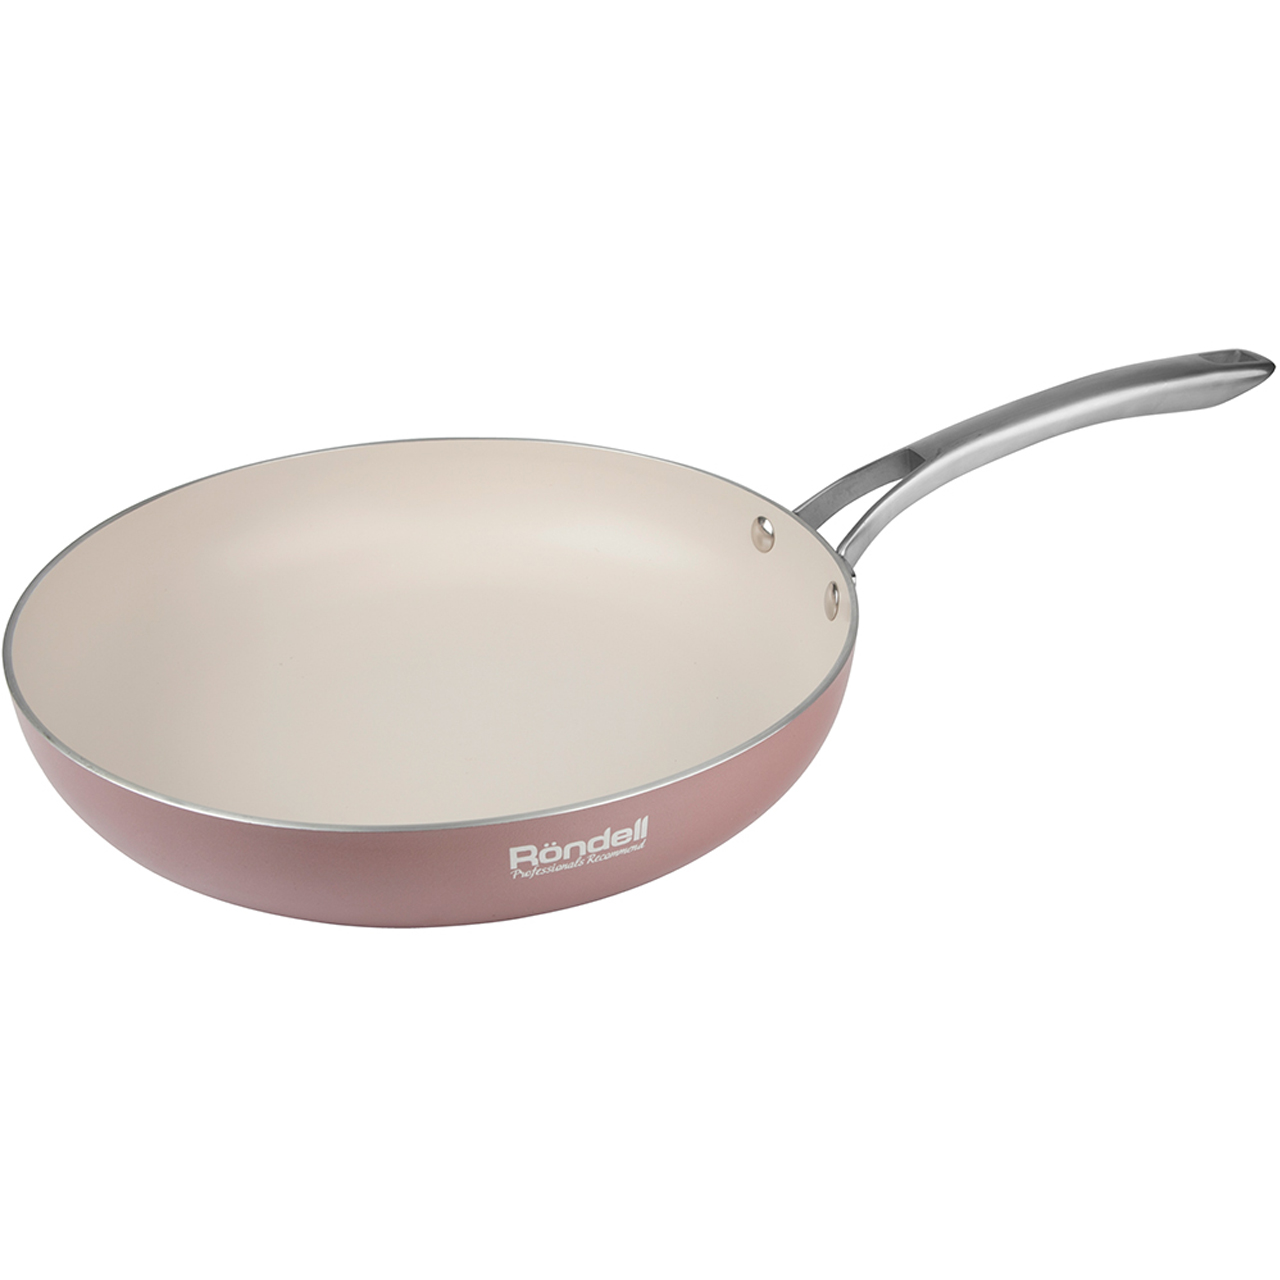 Frying pan without lid Rondell Rosso 24 cm RDA-543